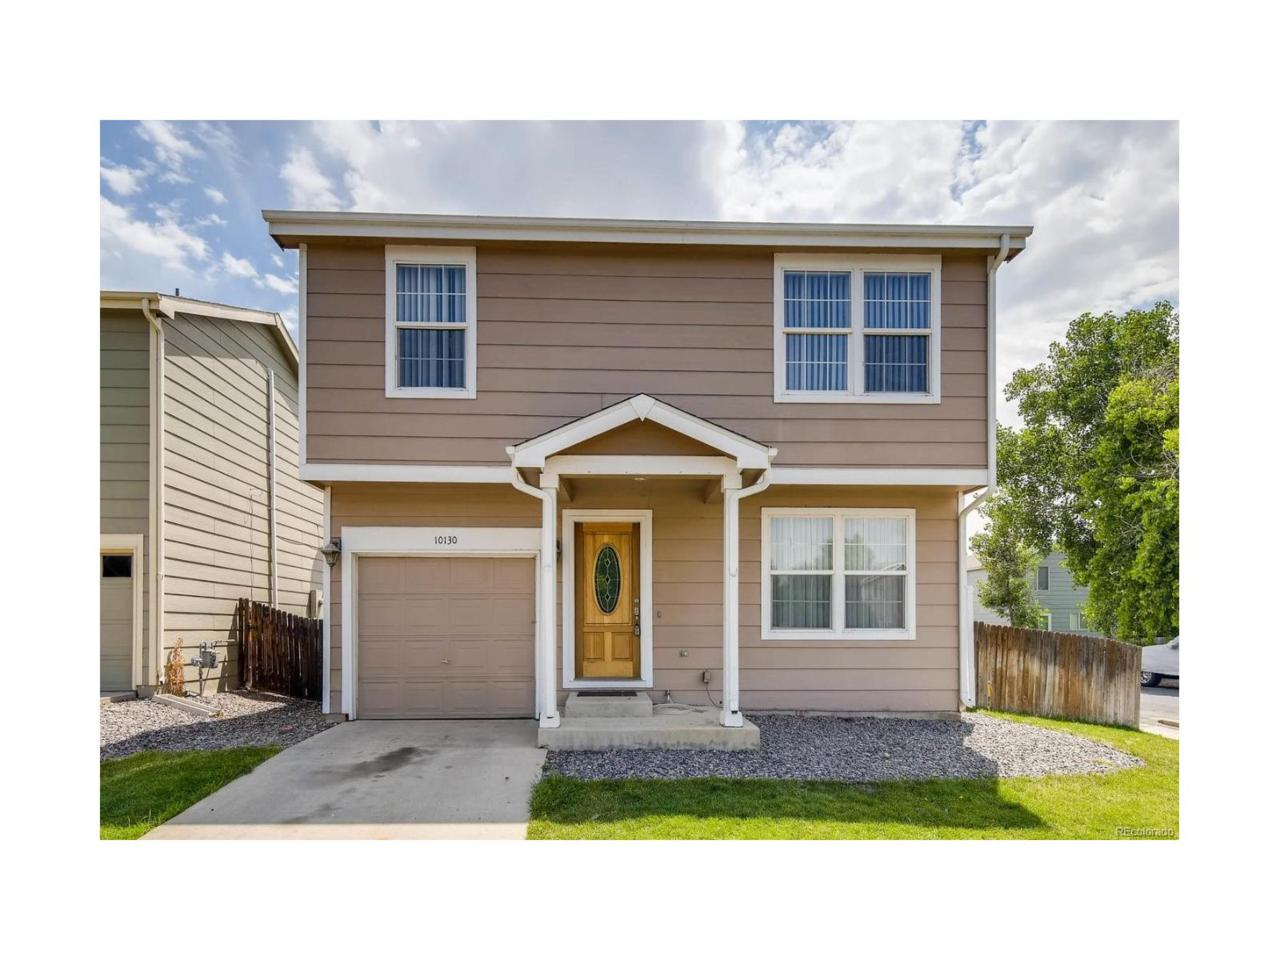 10130 Elm Court, Thornton, CO 80229 (MLS #3382108) :: 8z Real Estate